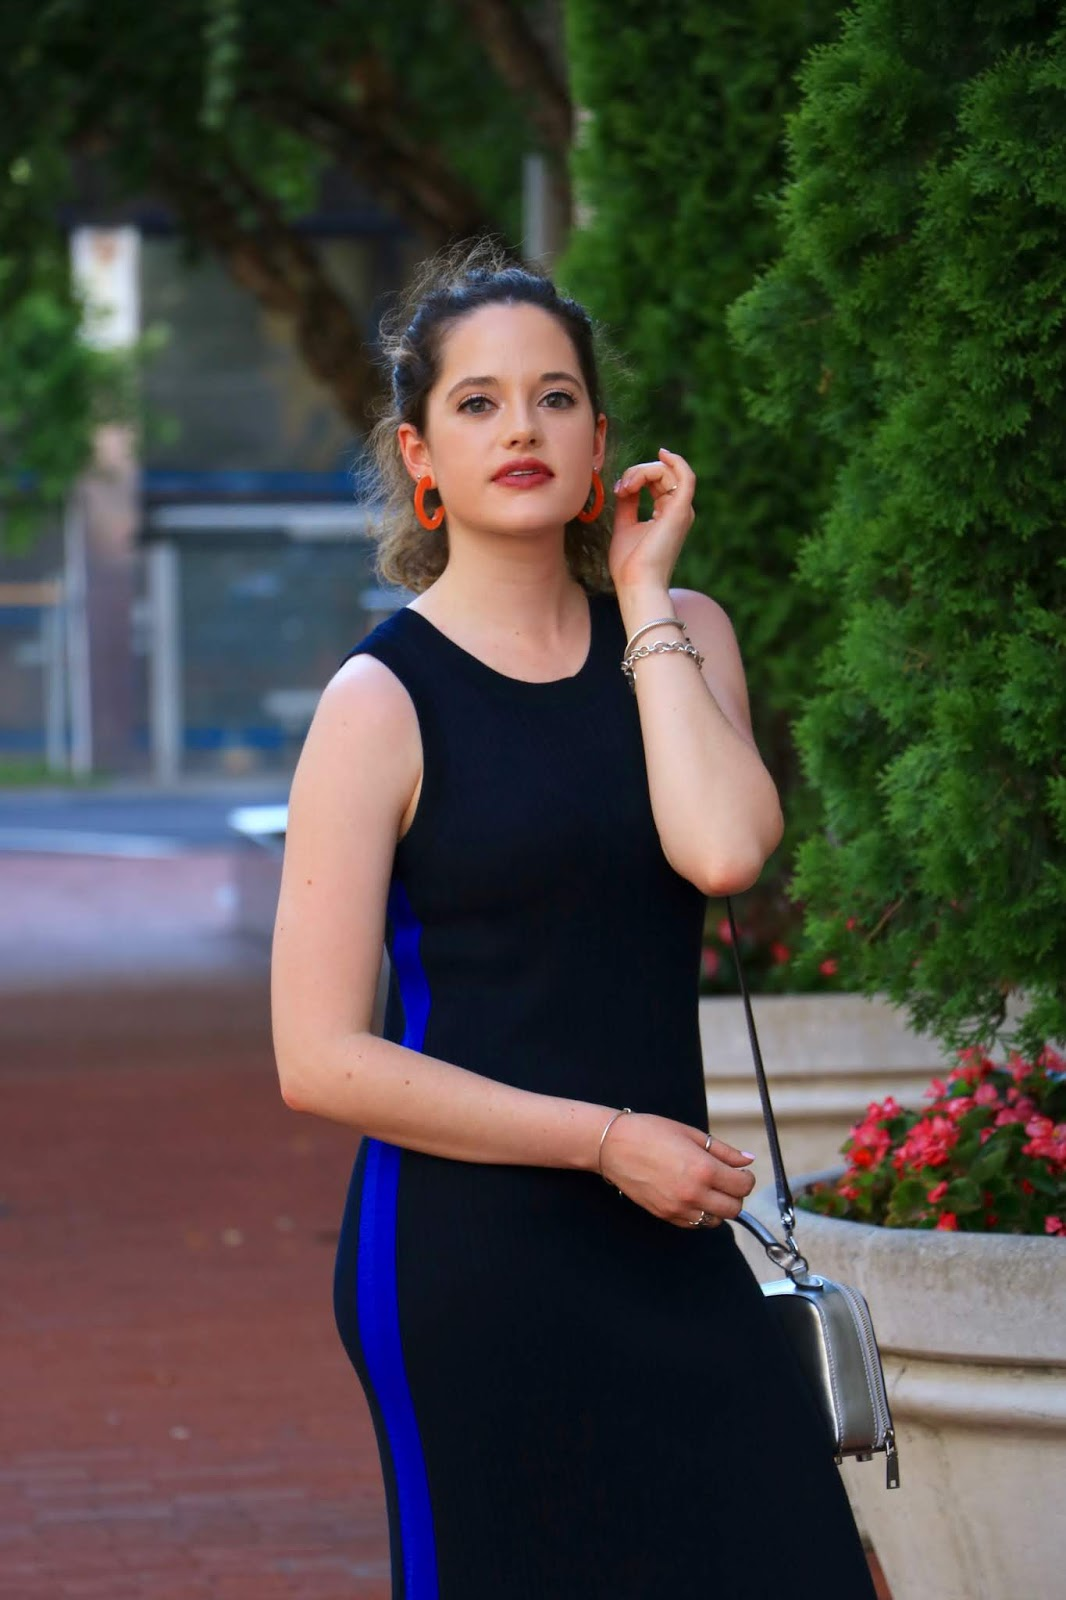 Nyc fashion blogger Kathleen Harper wearing a tight dress from Banana Republic.